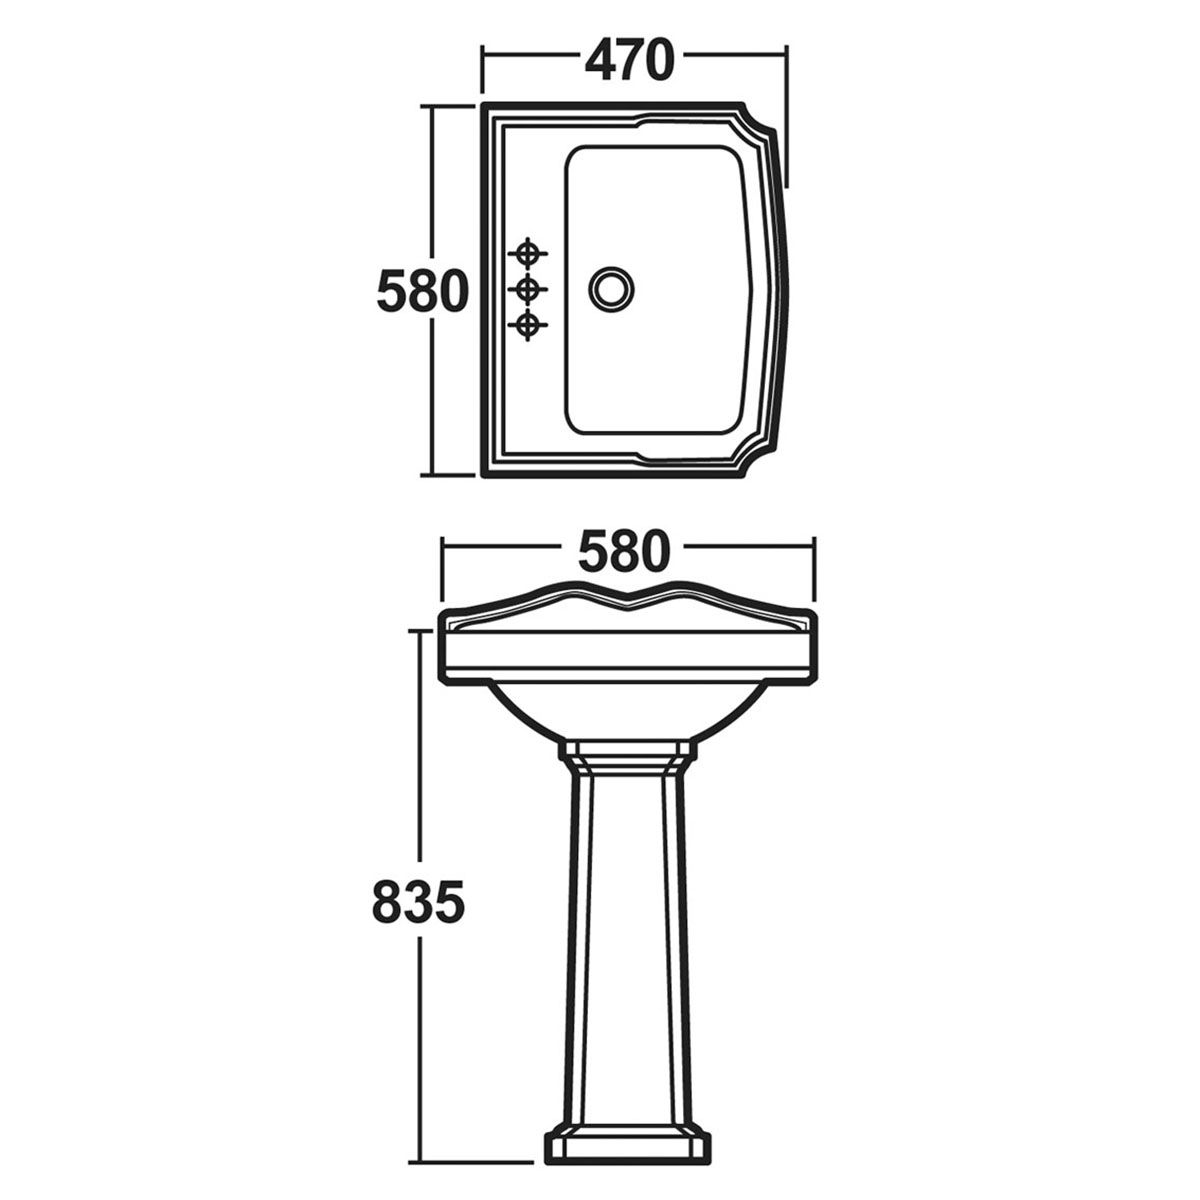 Premier Legend 2 Tap Hole Basin with Full Pedestal Dimensions